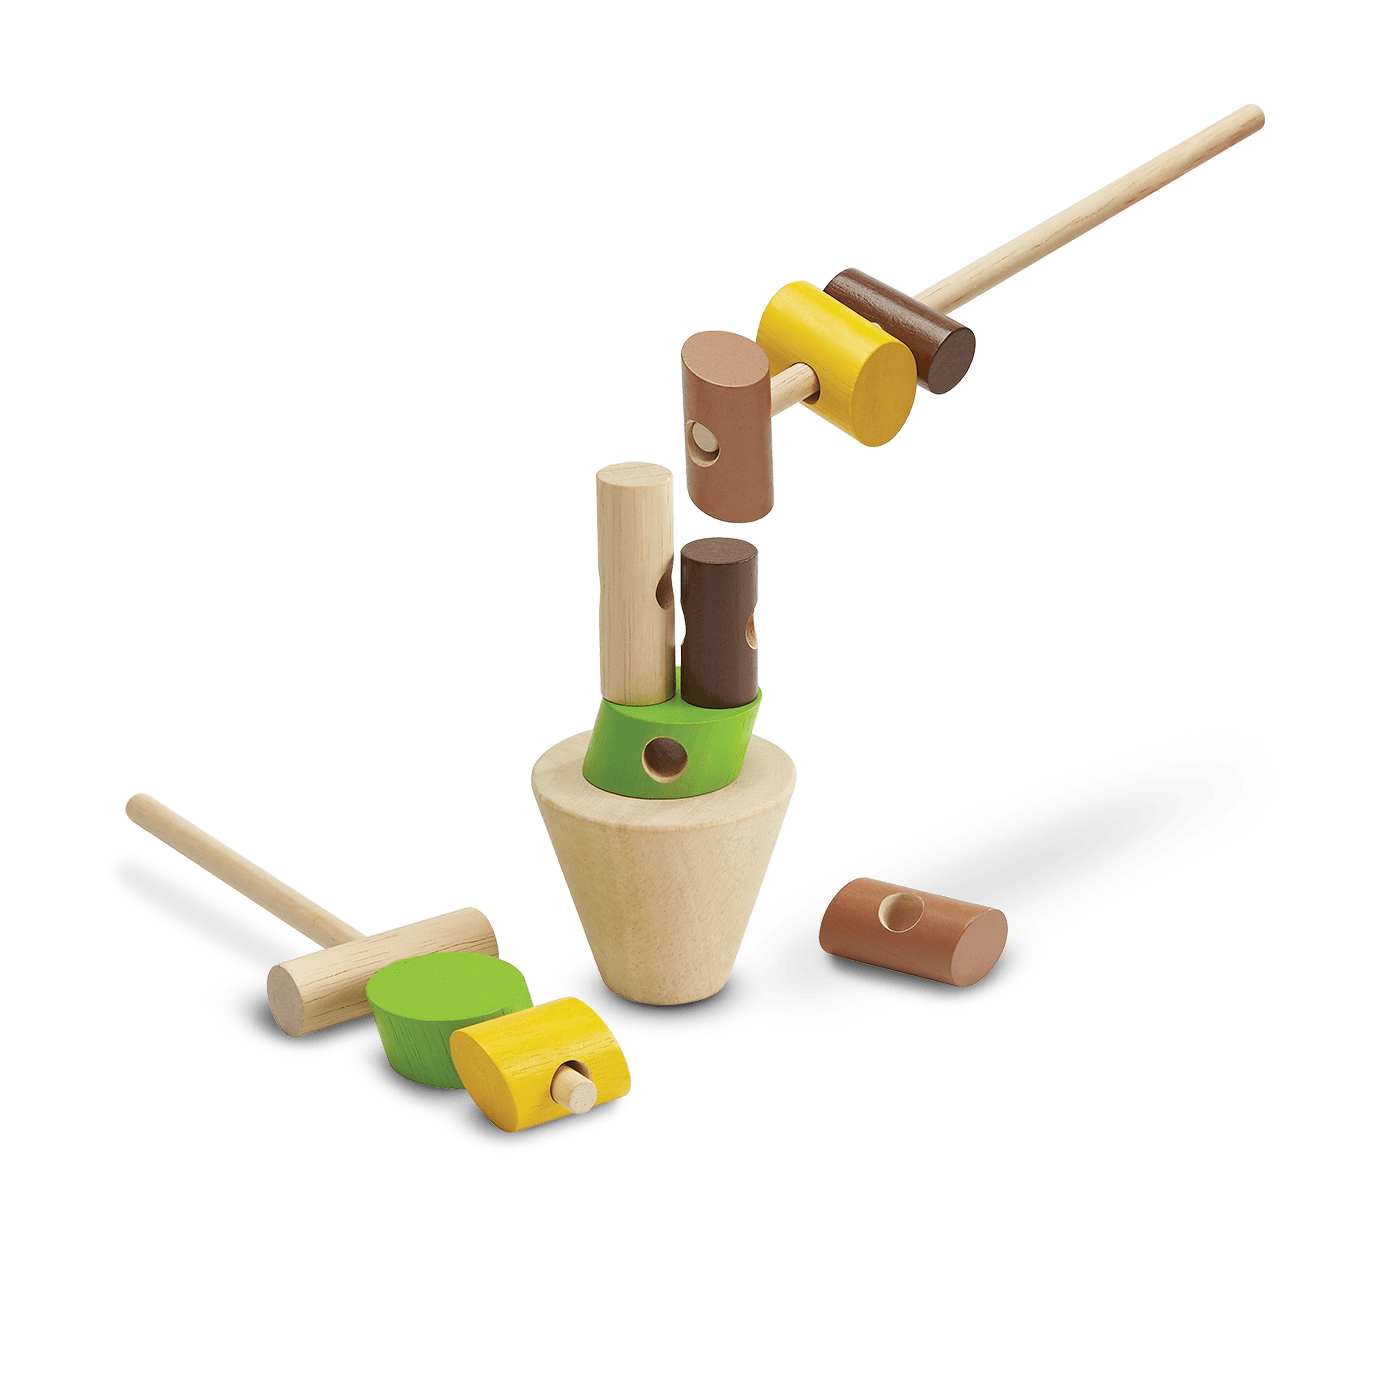 4638_PlanToys_STACKING_LOGS_Game_and_Puzzles_Concentration_Coordination_Fine_Motor_Social_Language_and_Communications_3yrs_Wooden_toys_Education_toys_Safety_Toys_Non-toxic_0.png